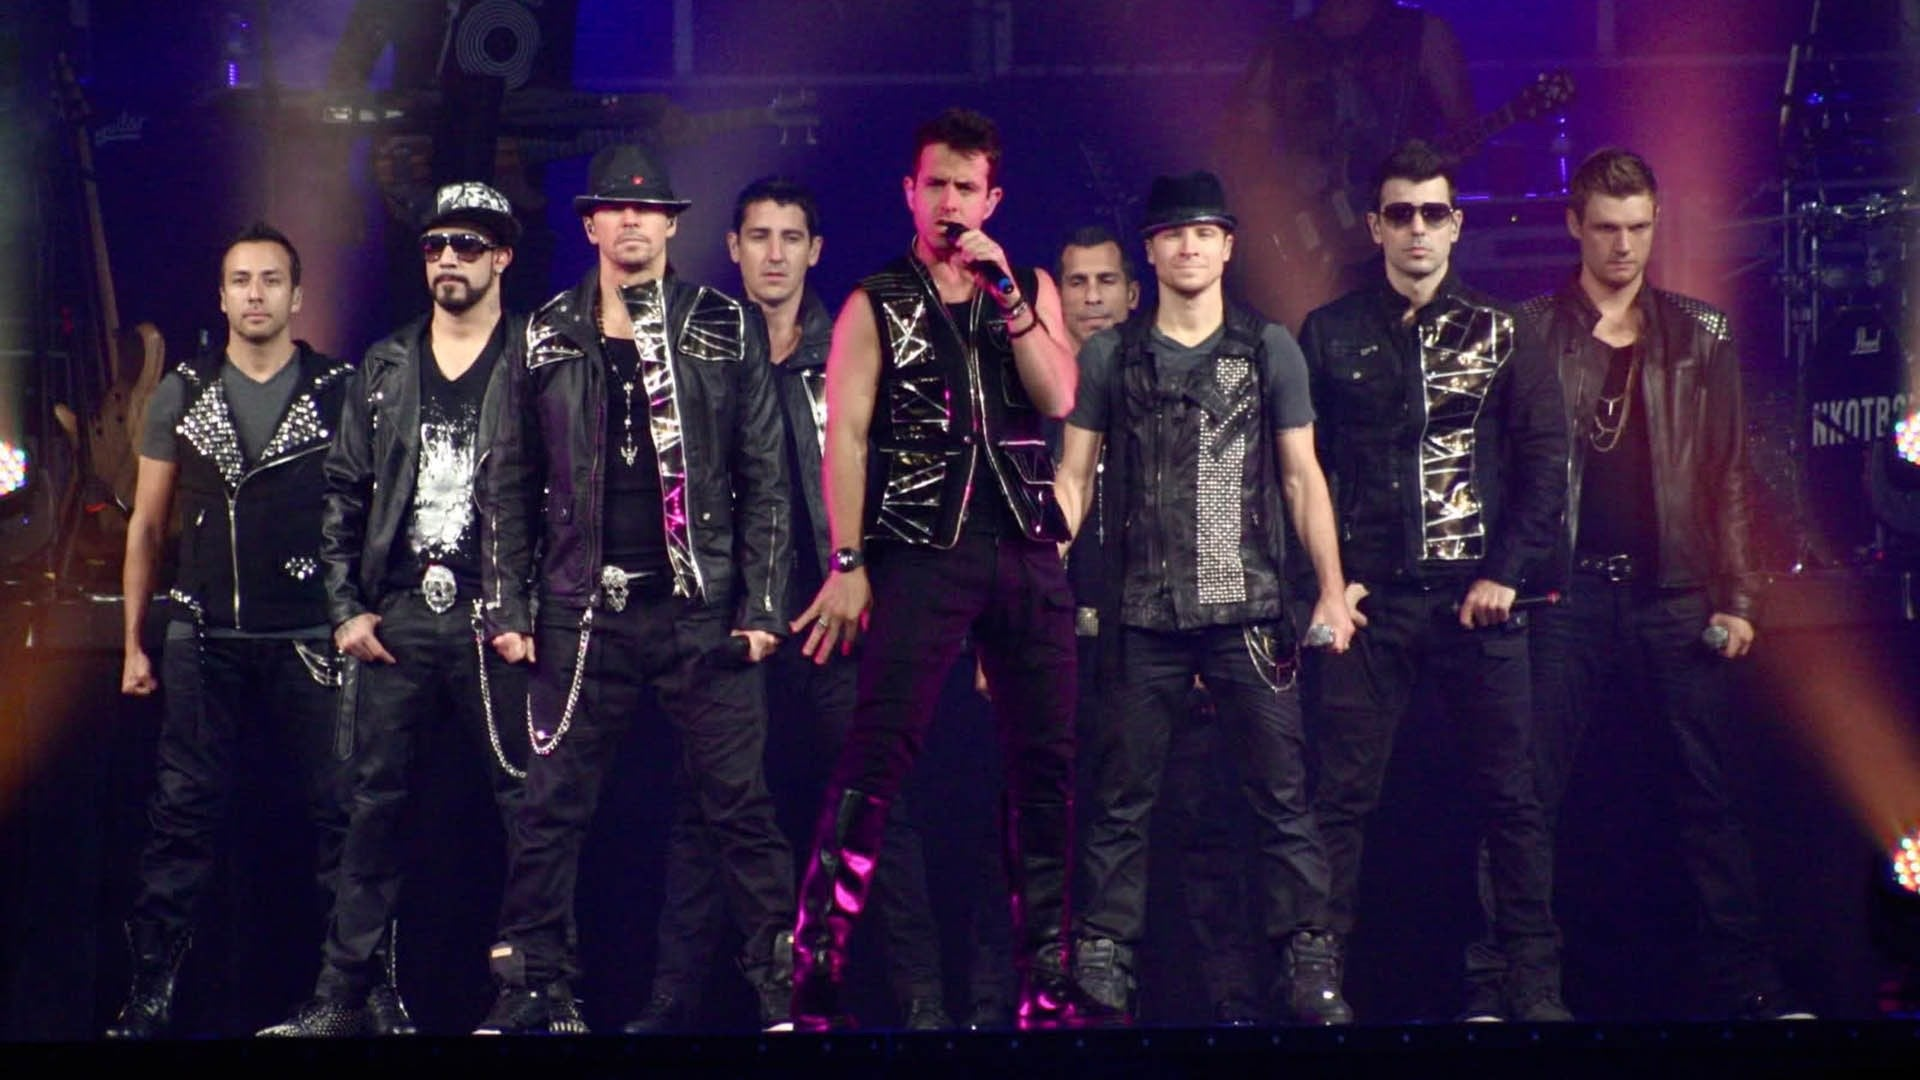 NKOTBSB: Live at the O2 Arena